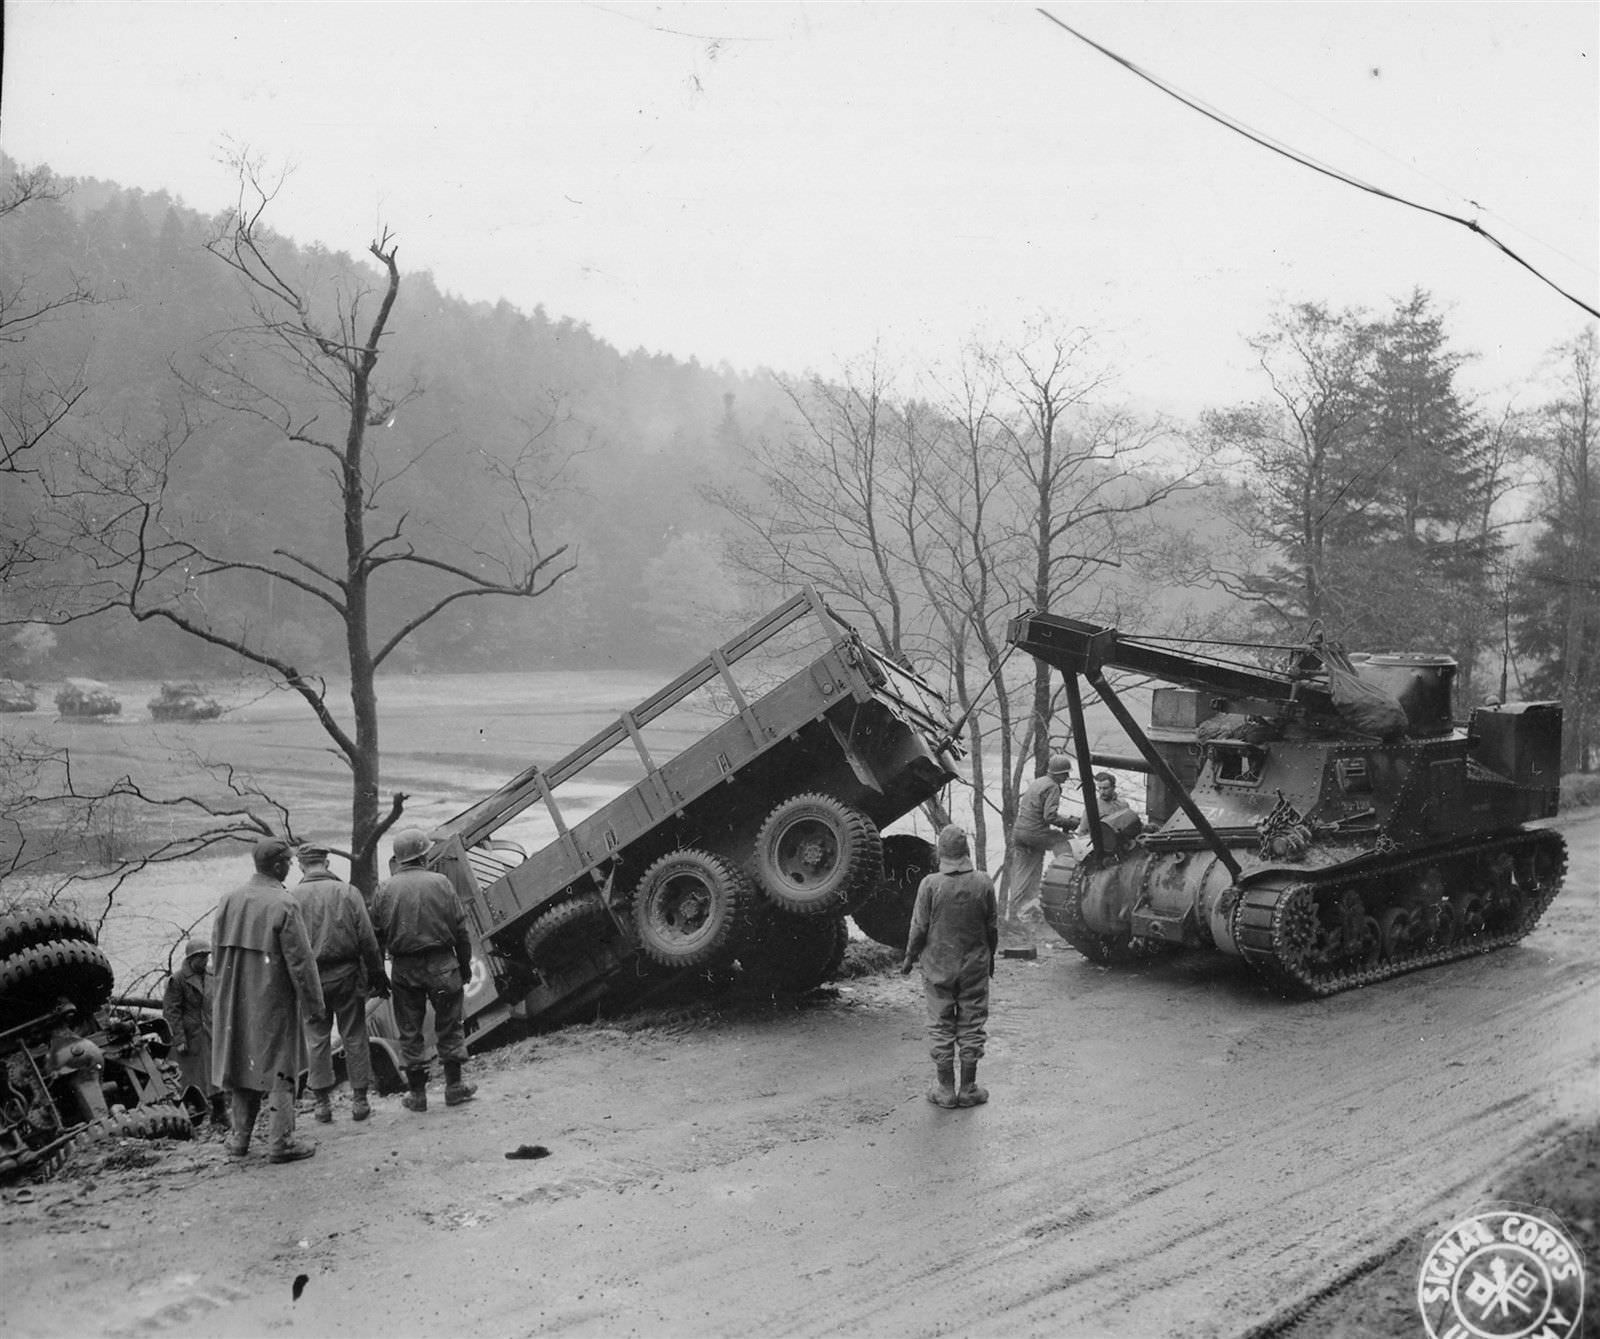 M31 of the 7th Army at Les Rouges-Eaux, France. 8 Nov 1944.